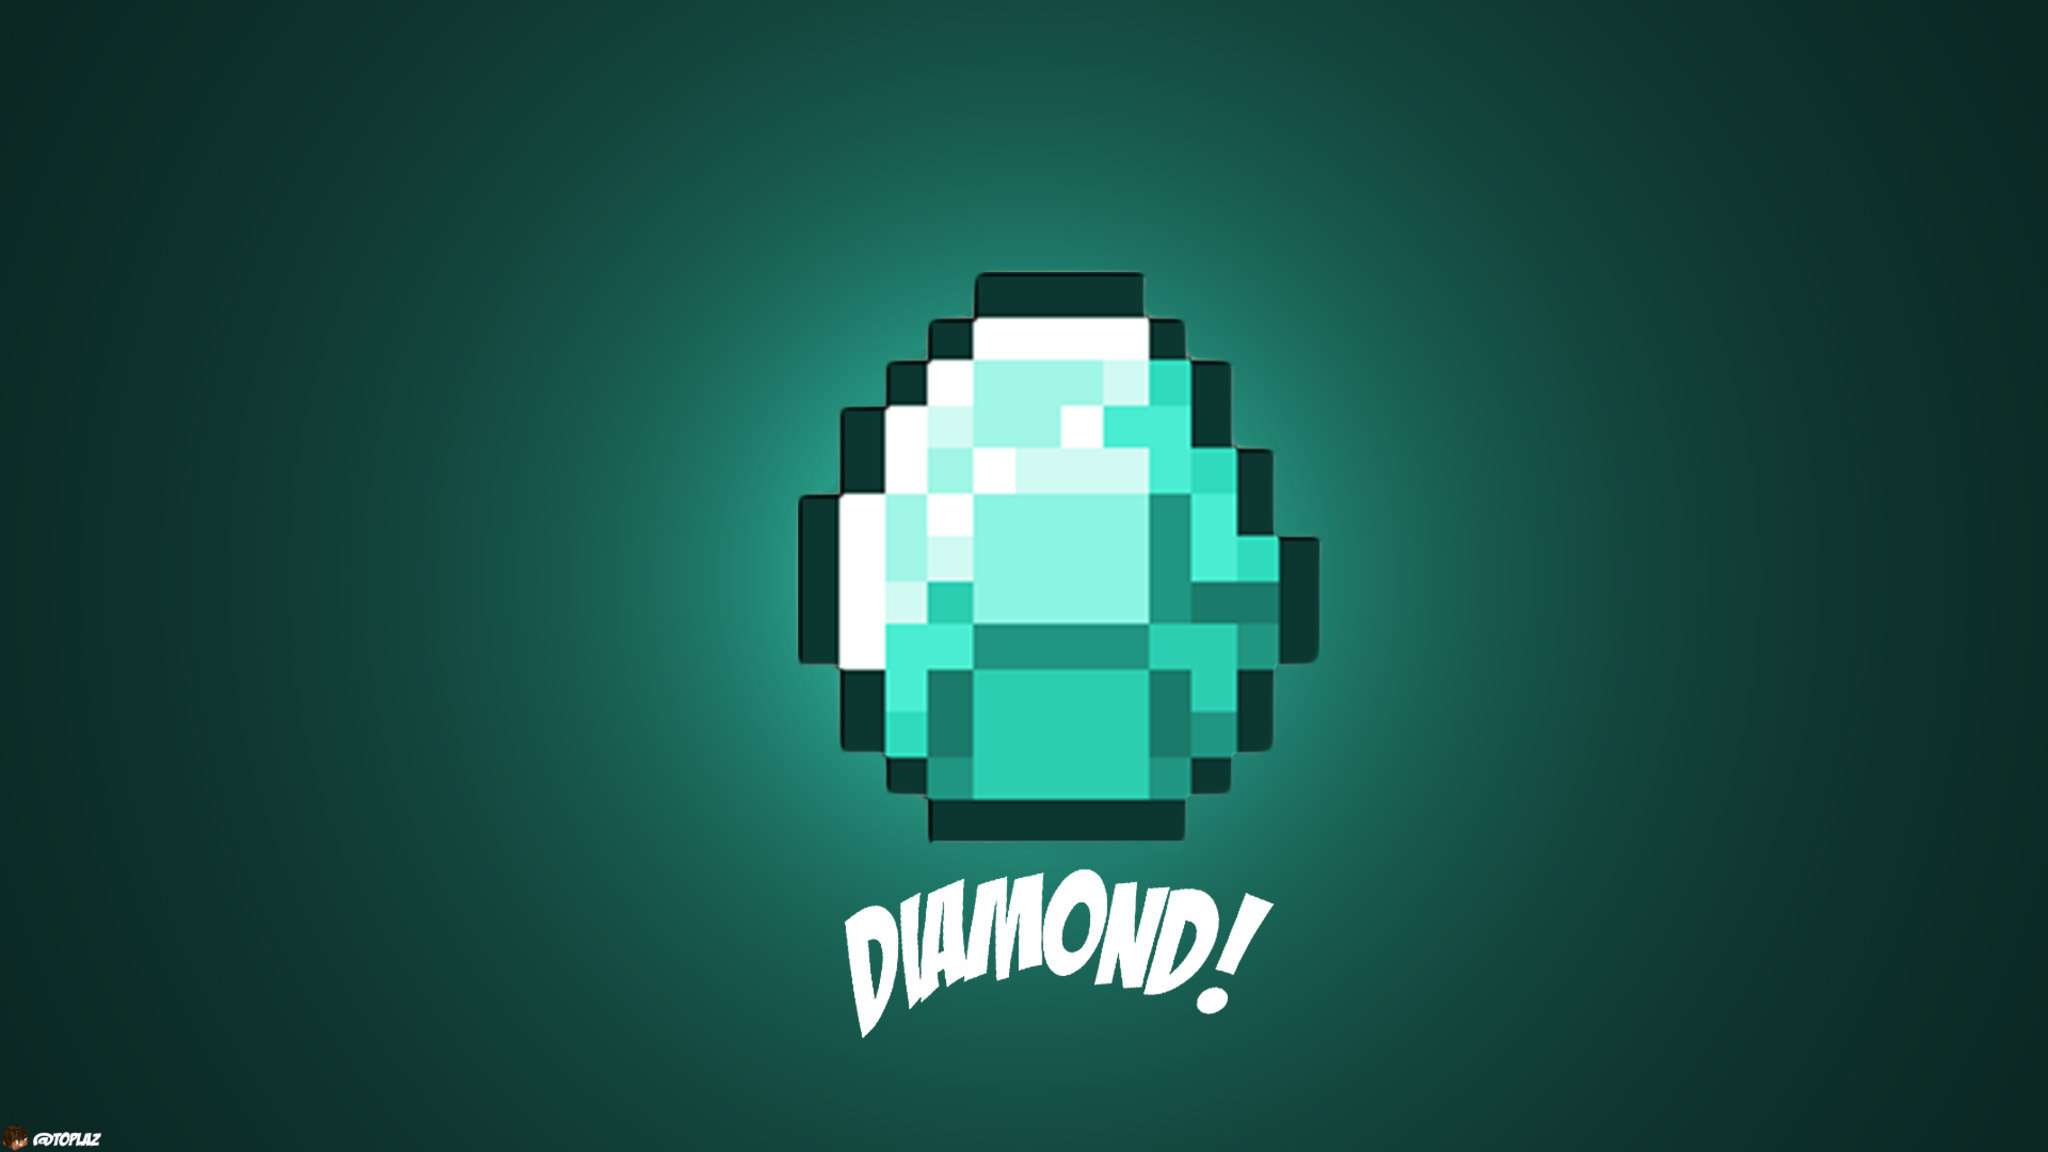 2048x1152 Diamond Minecraft 2048x1152 Resolution Hd 4k